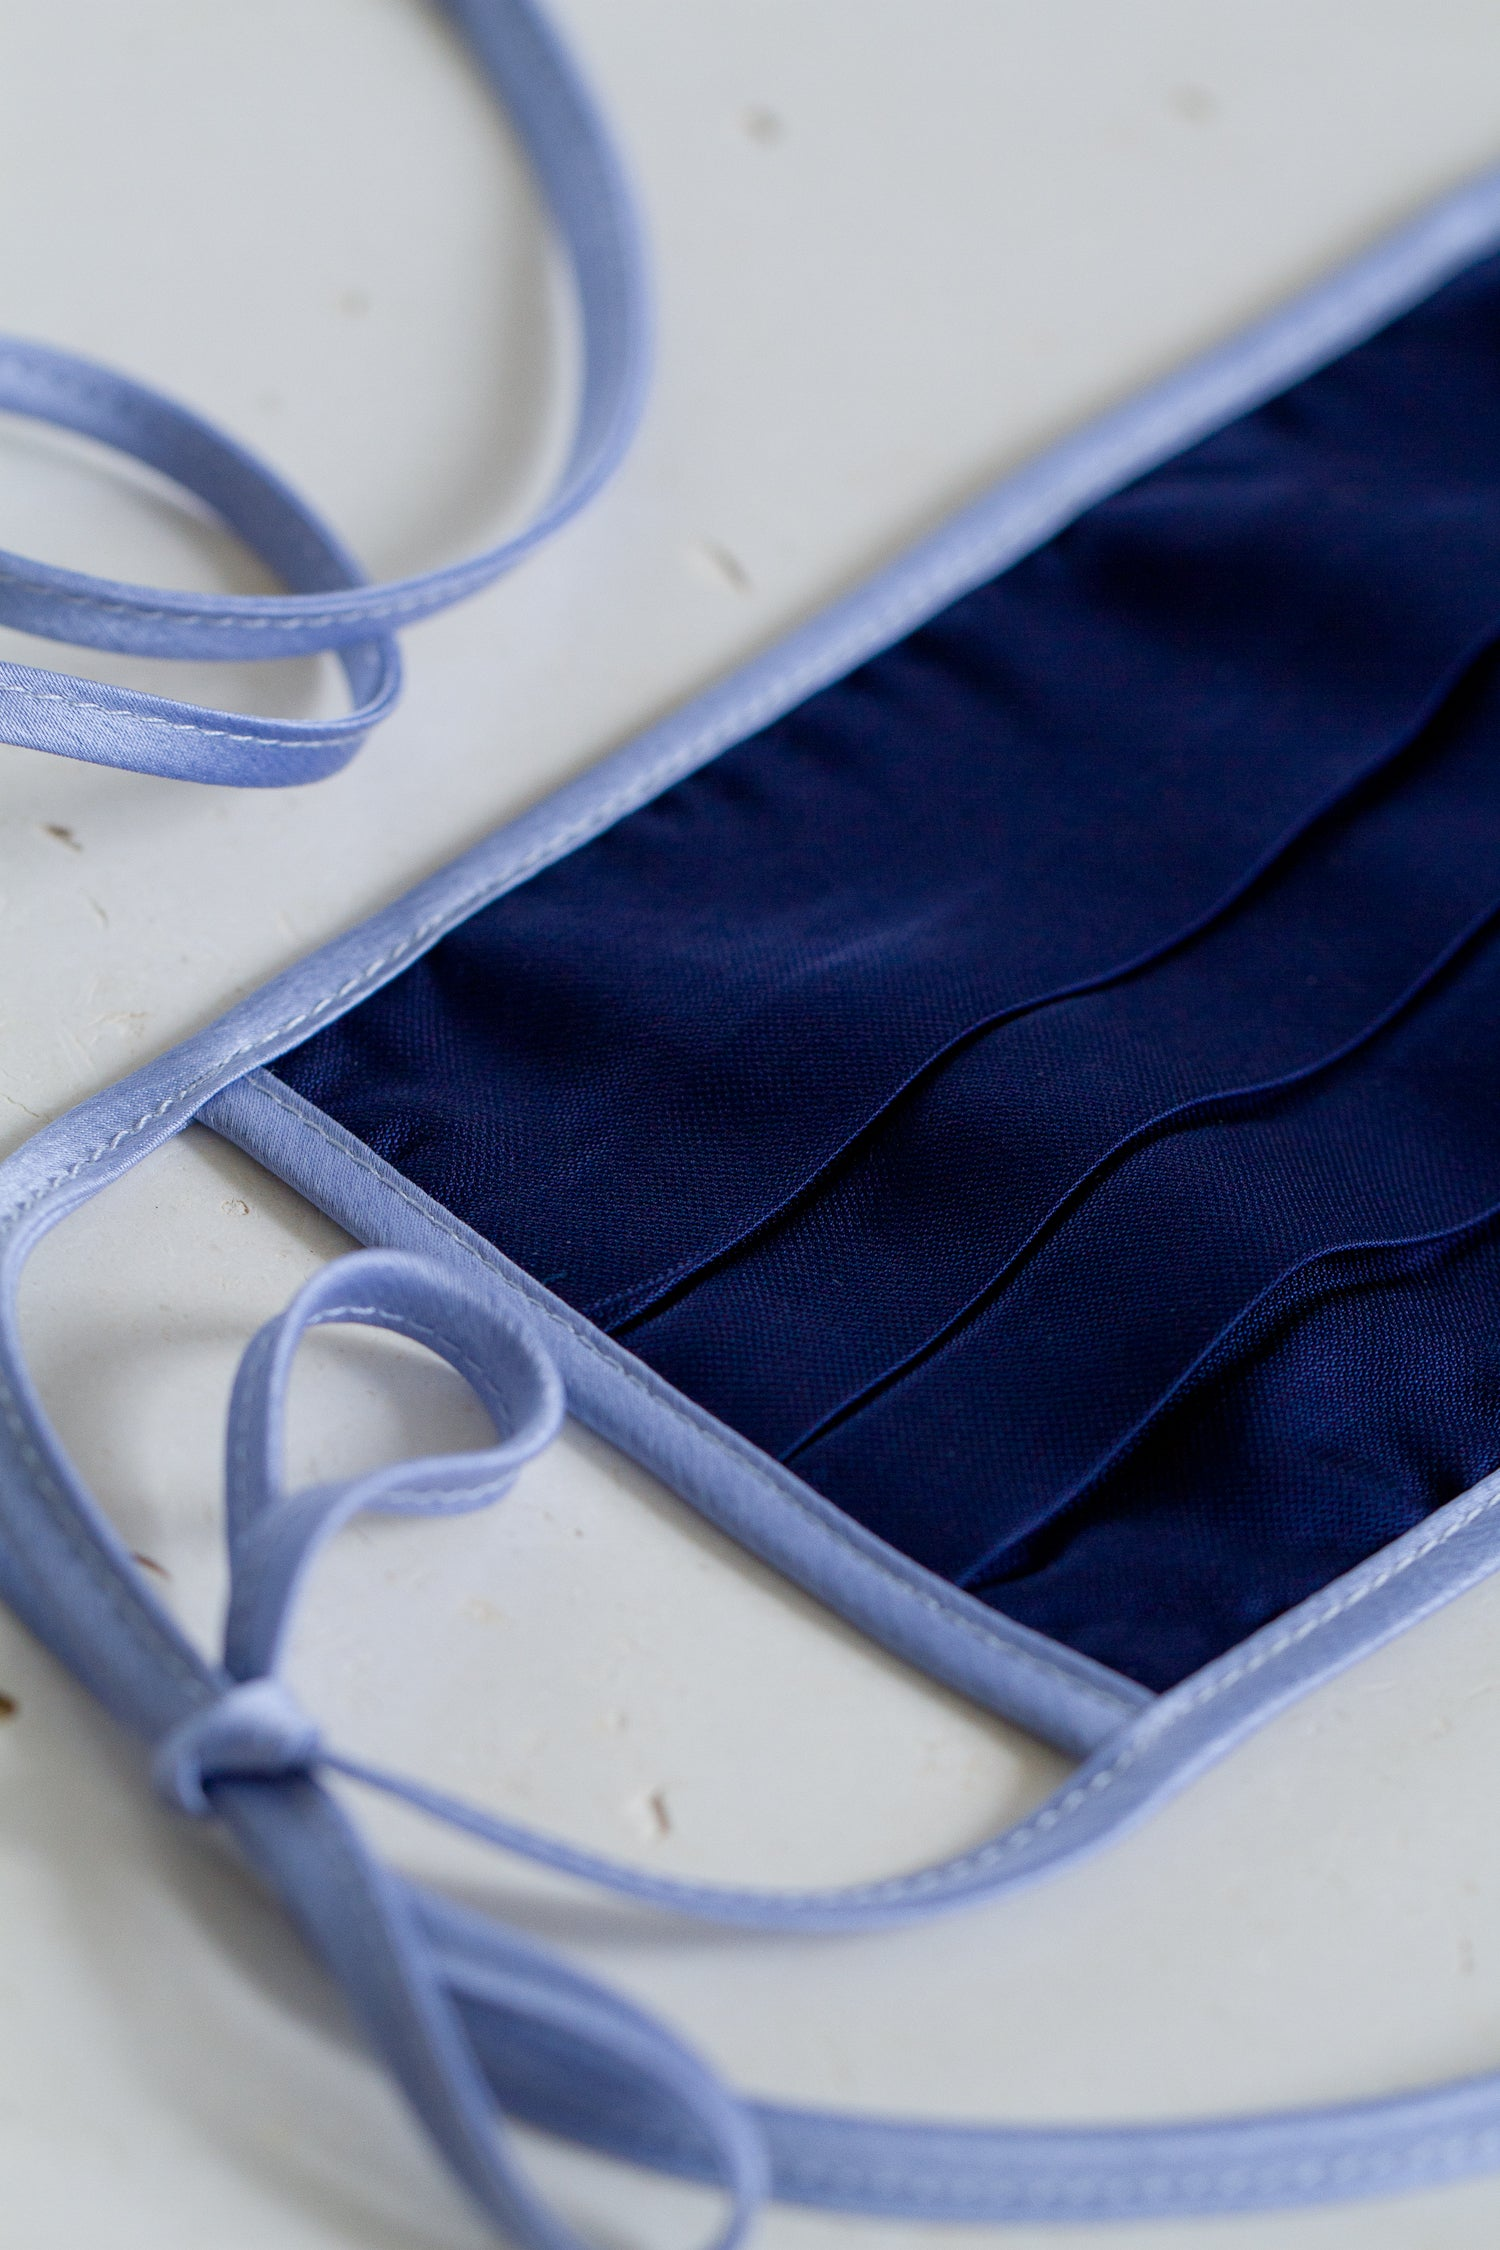 Face Mask with Ties - Navy